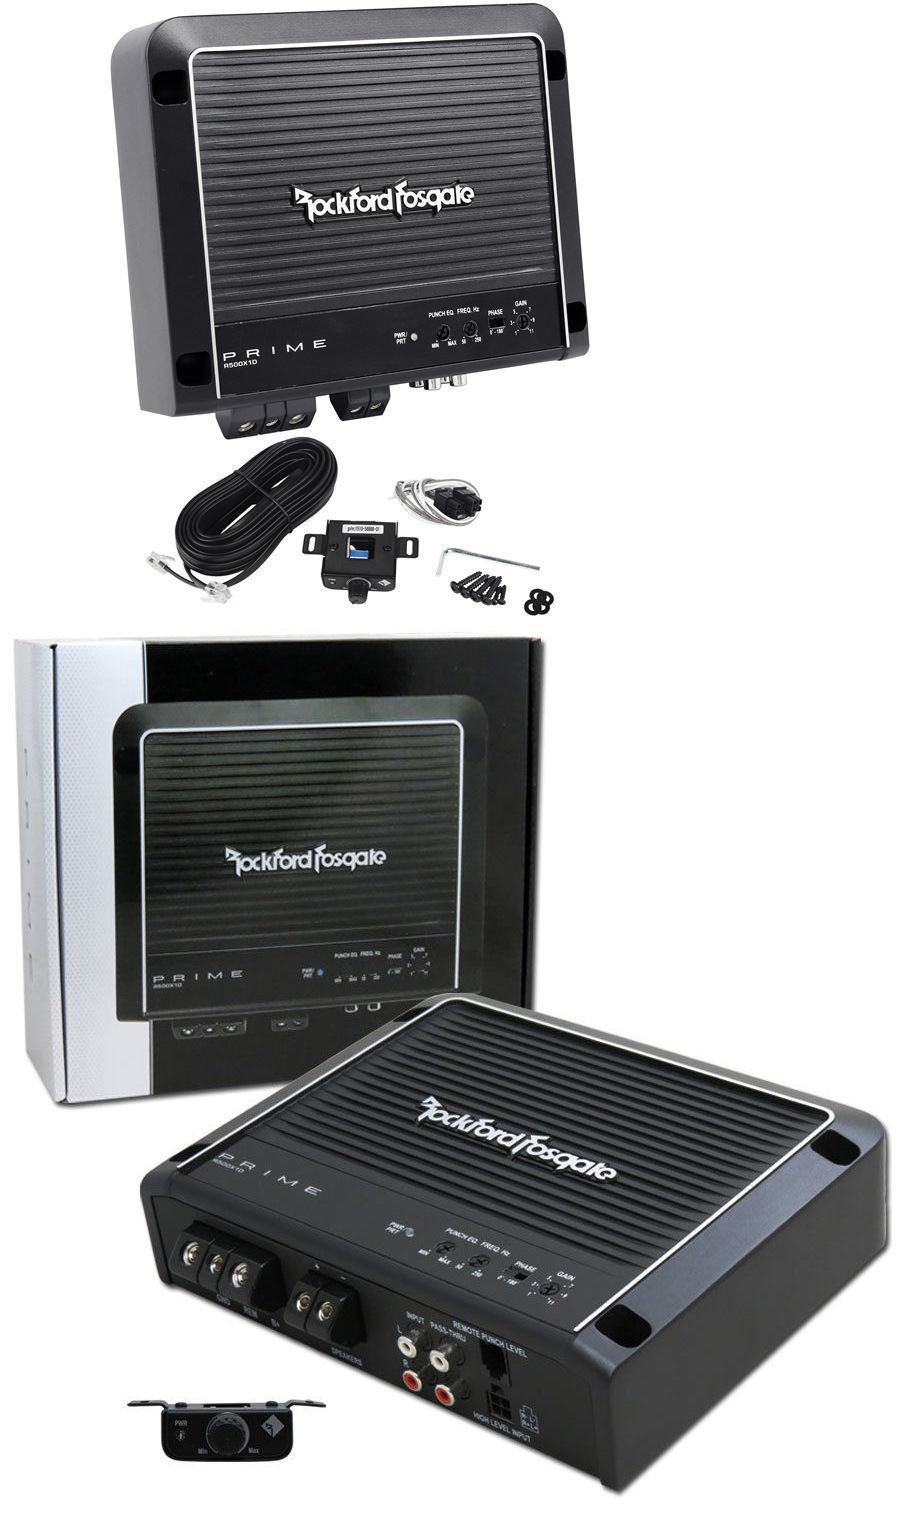 Car Amplifiers: Rockford Fosgate Prime R500x1d 500 Watt Rms